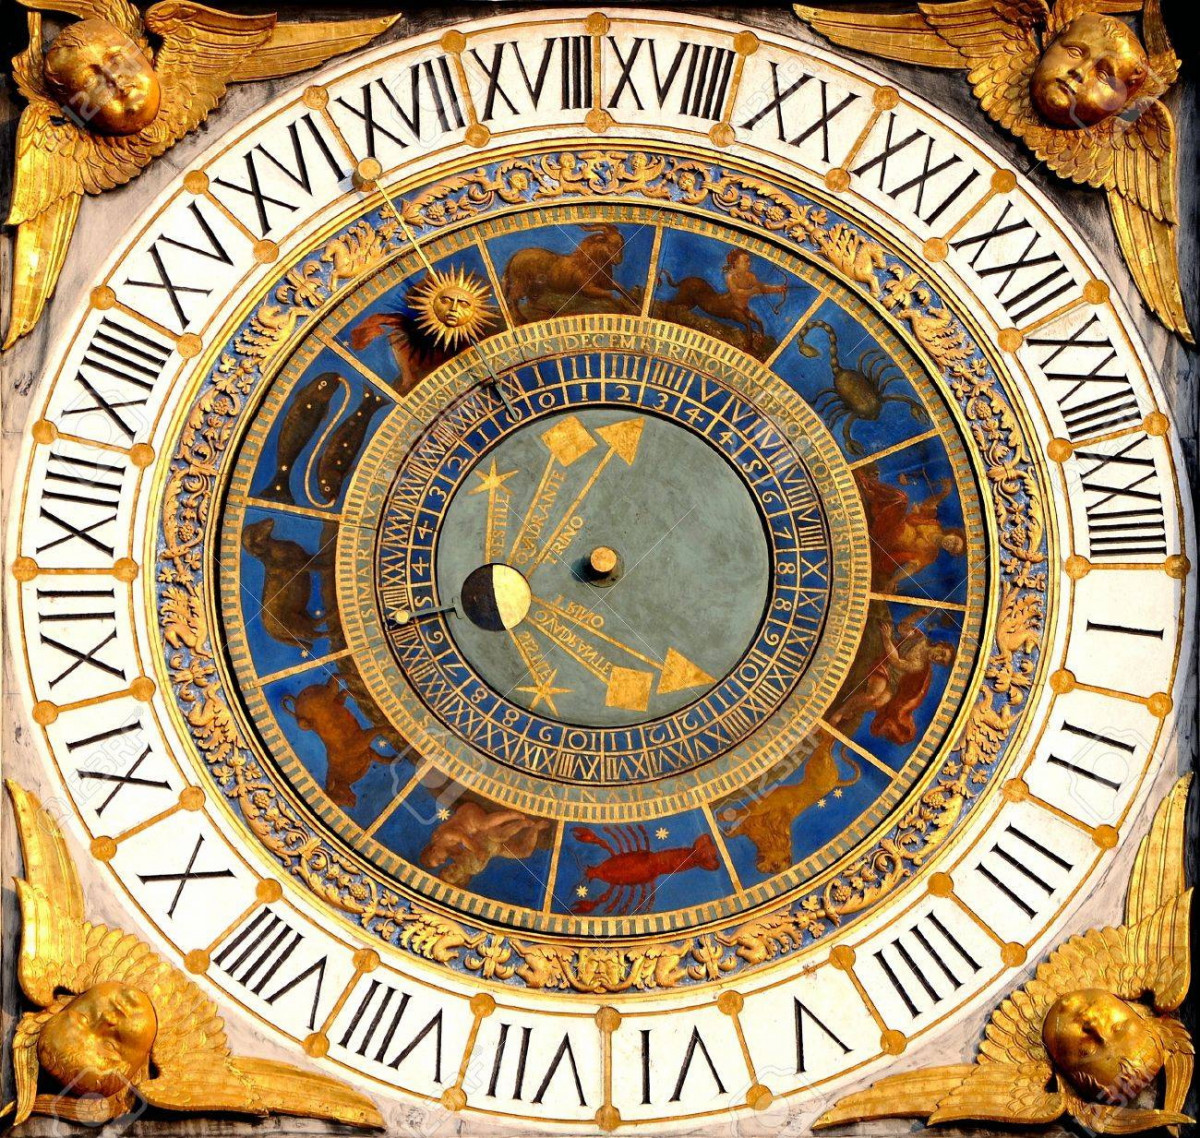 renaissance-astronomical-clock-in-brescia-Lombardy -Italy-years-1540-50-displays-hours-moon-phases-and-the-zodiac